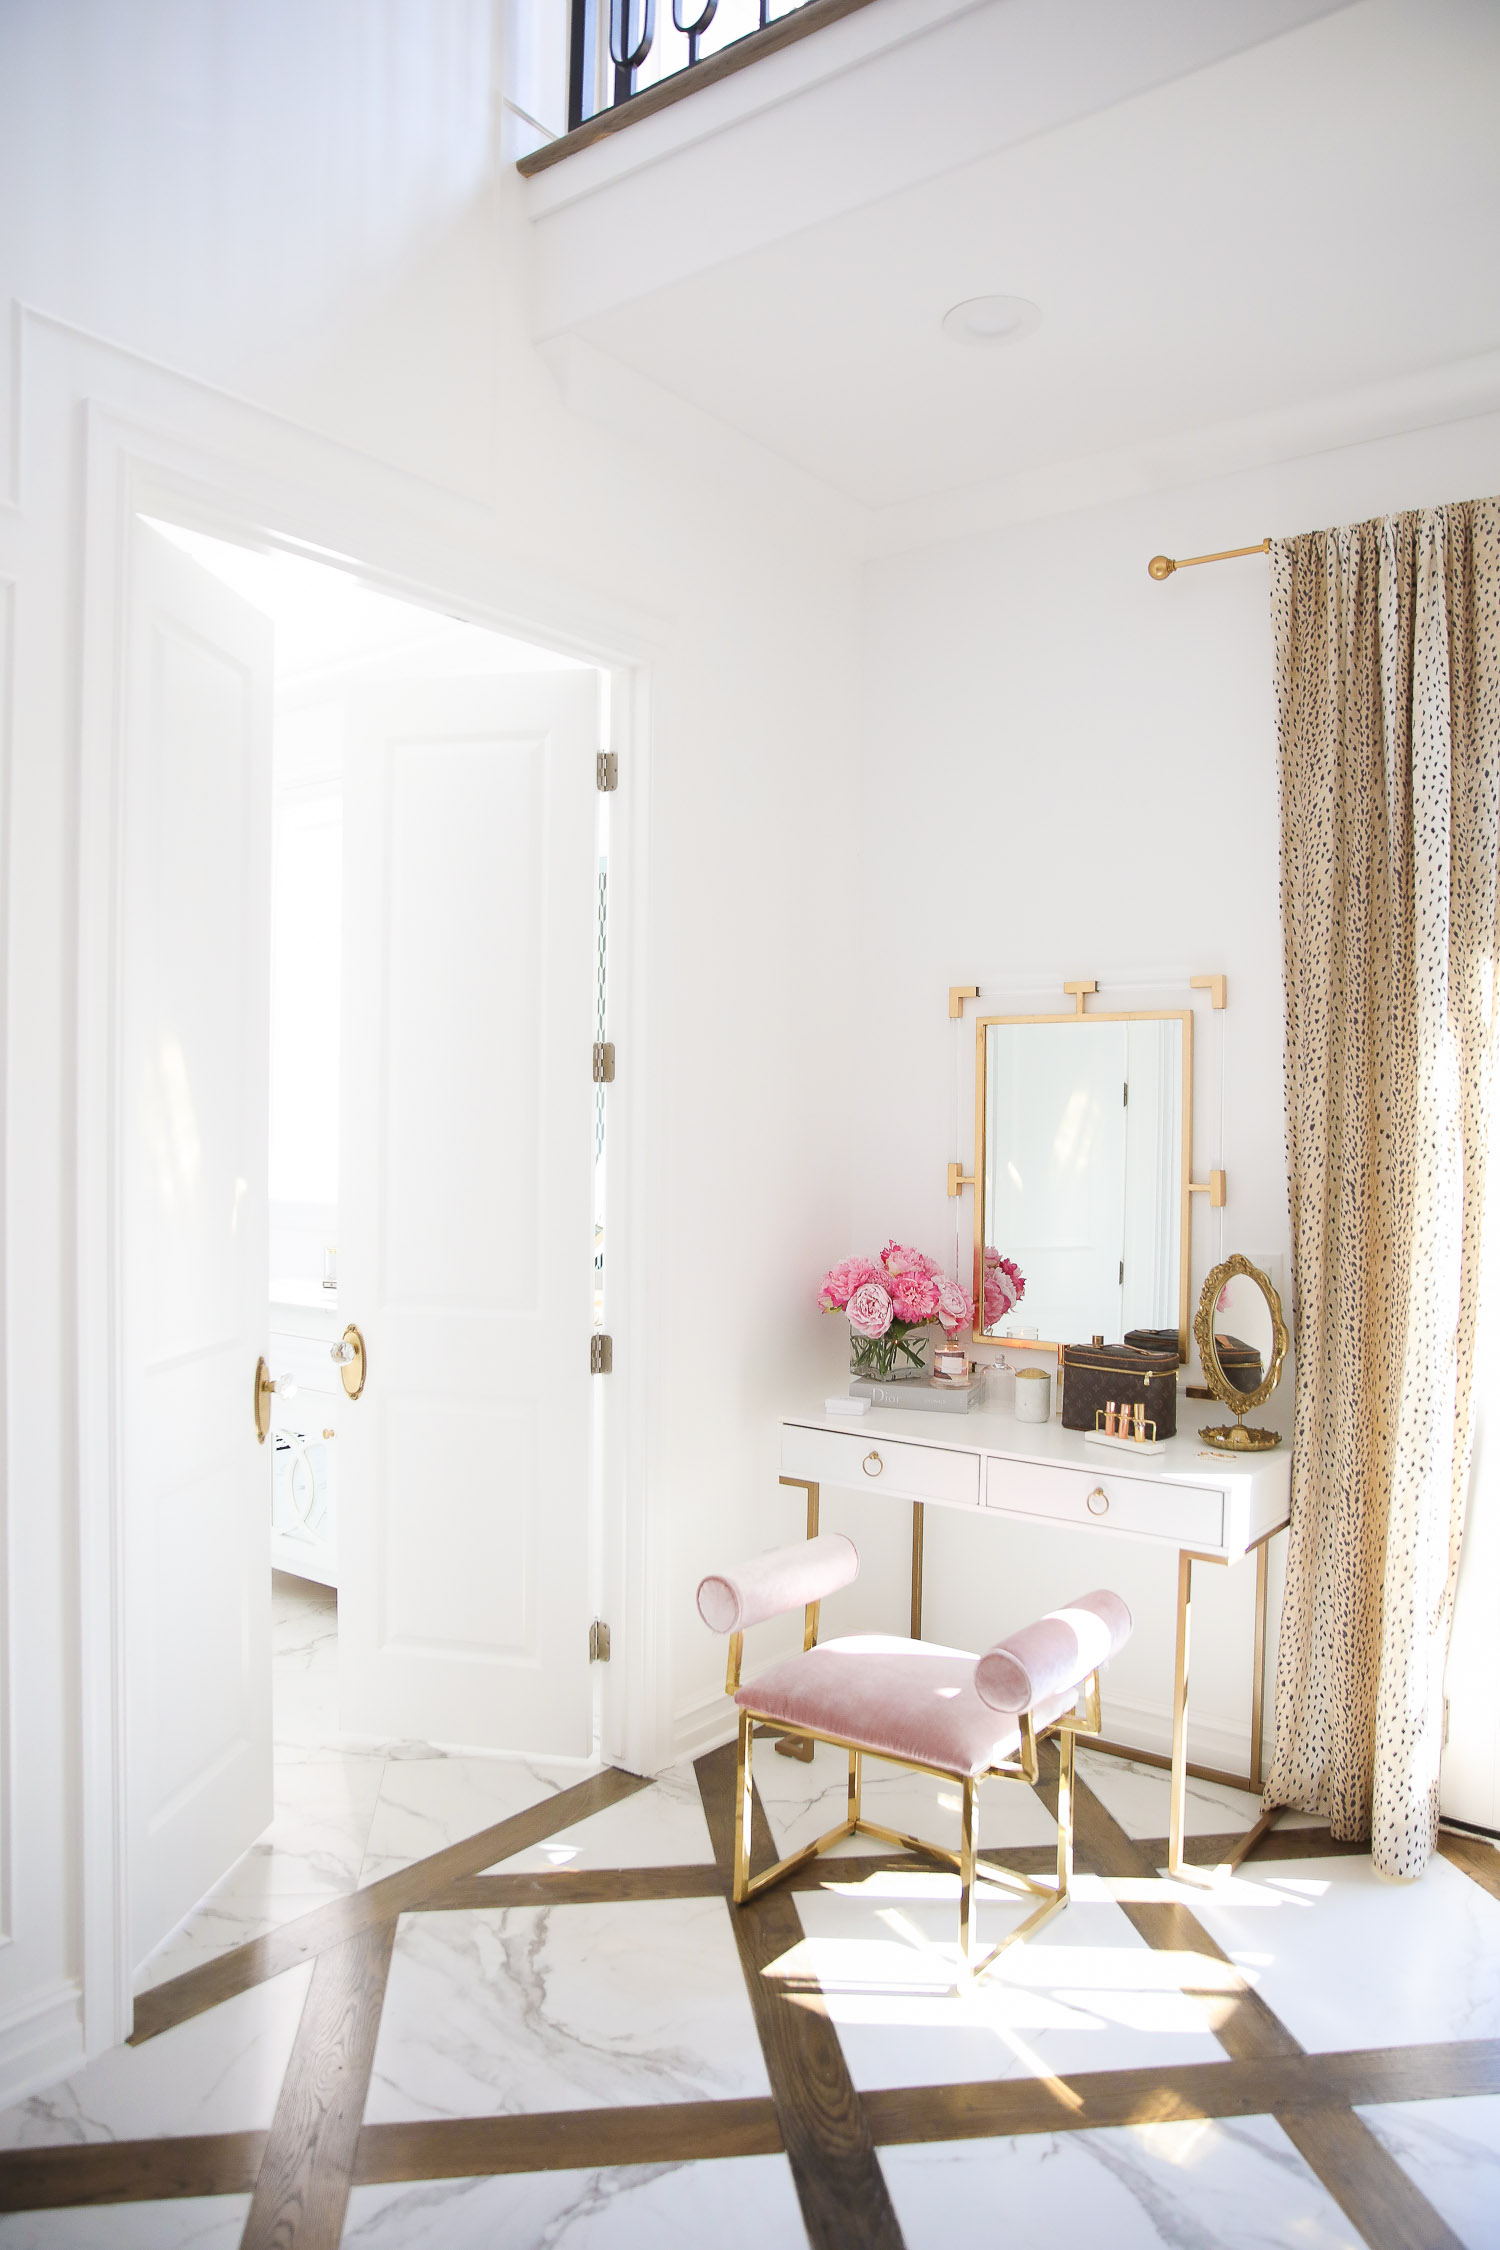 two story closet pinterest, emily gemma closet, home decor luxury blog post3 | Instagram Recap by popular US life and style blog, The Sweetest Thing: image of a white and gold vanity, pink velvet and gold vanity bench, acrylic and gold mirror, Louis Vuitton makeup case, faux peonies, and Embellished gold hand mirror.